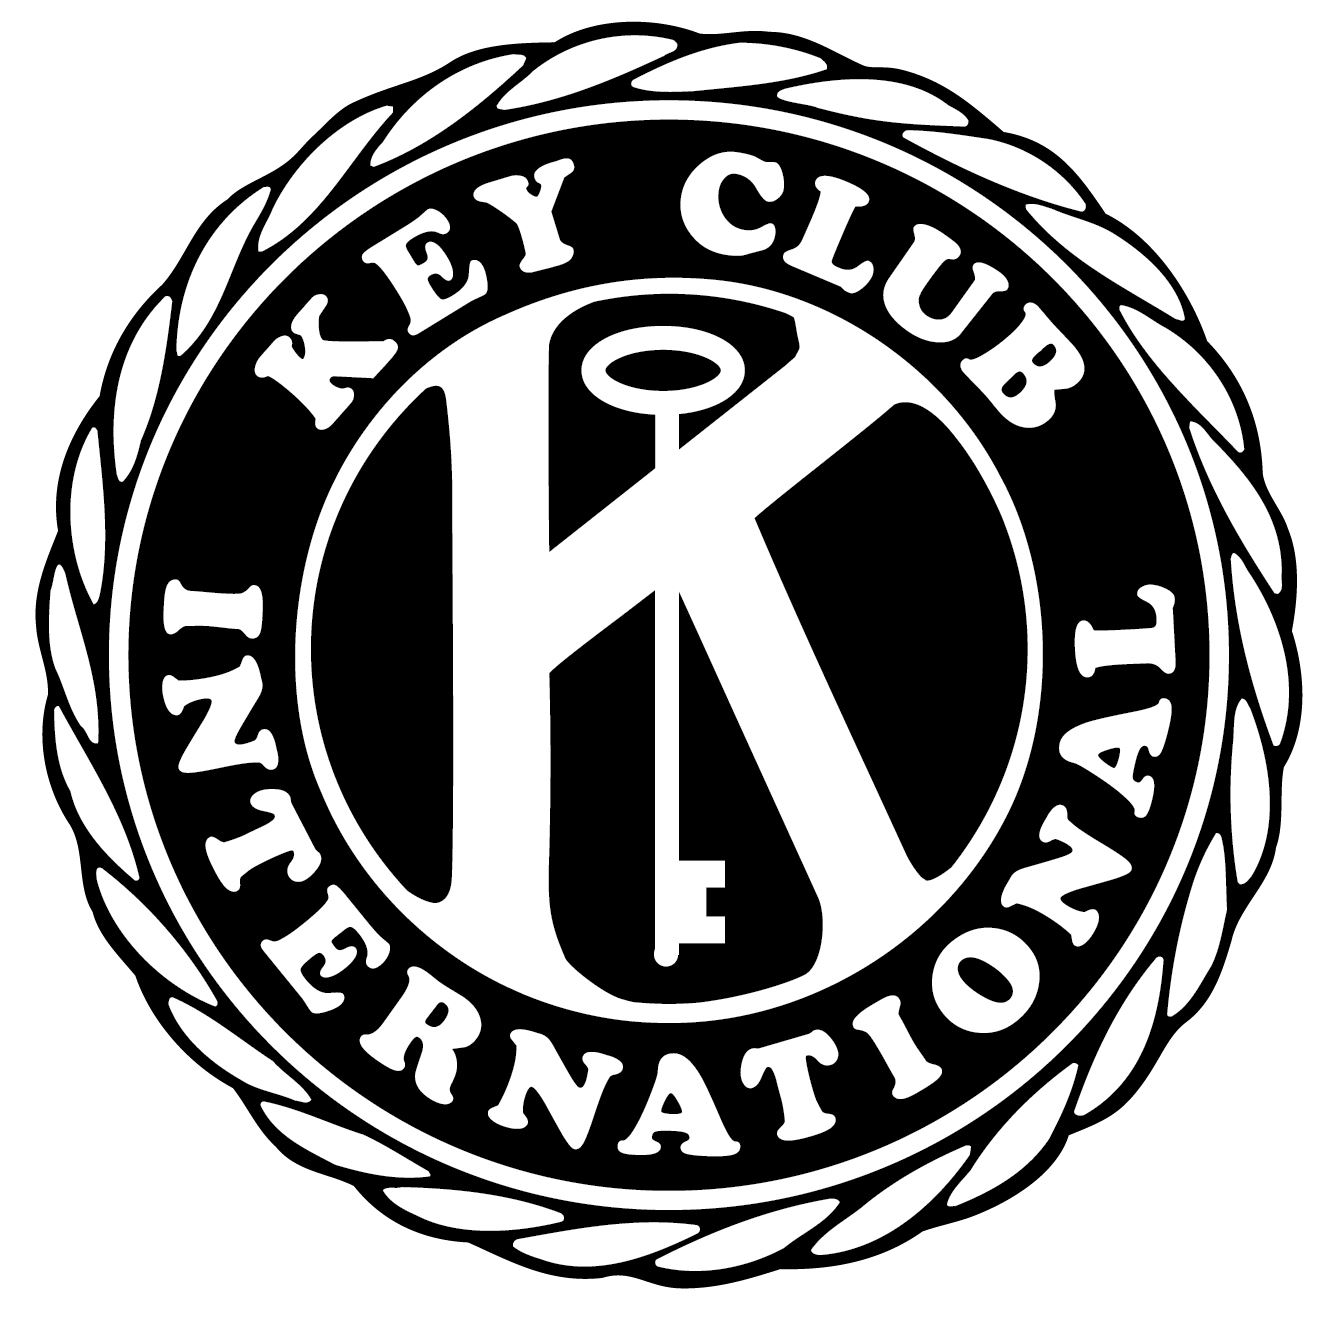 KEY-CLUB-SEAL-BW